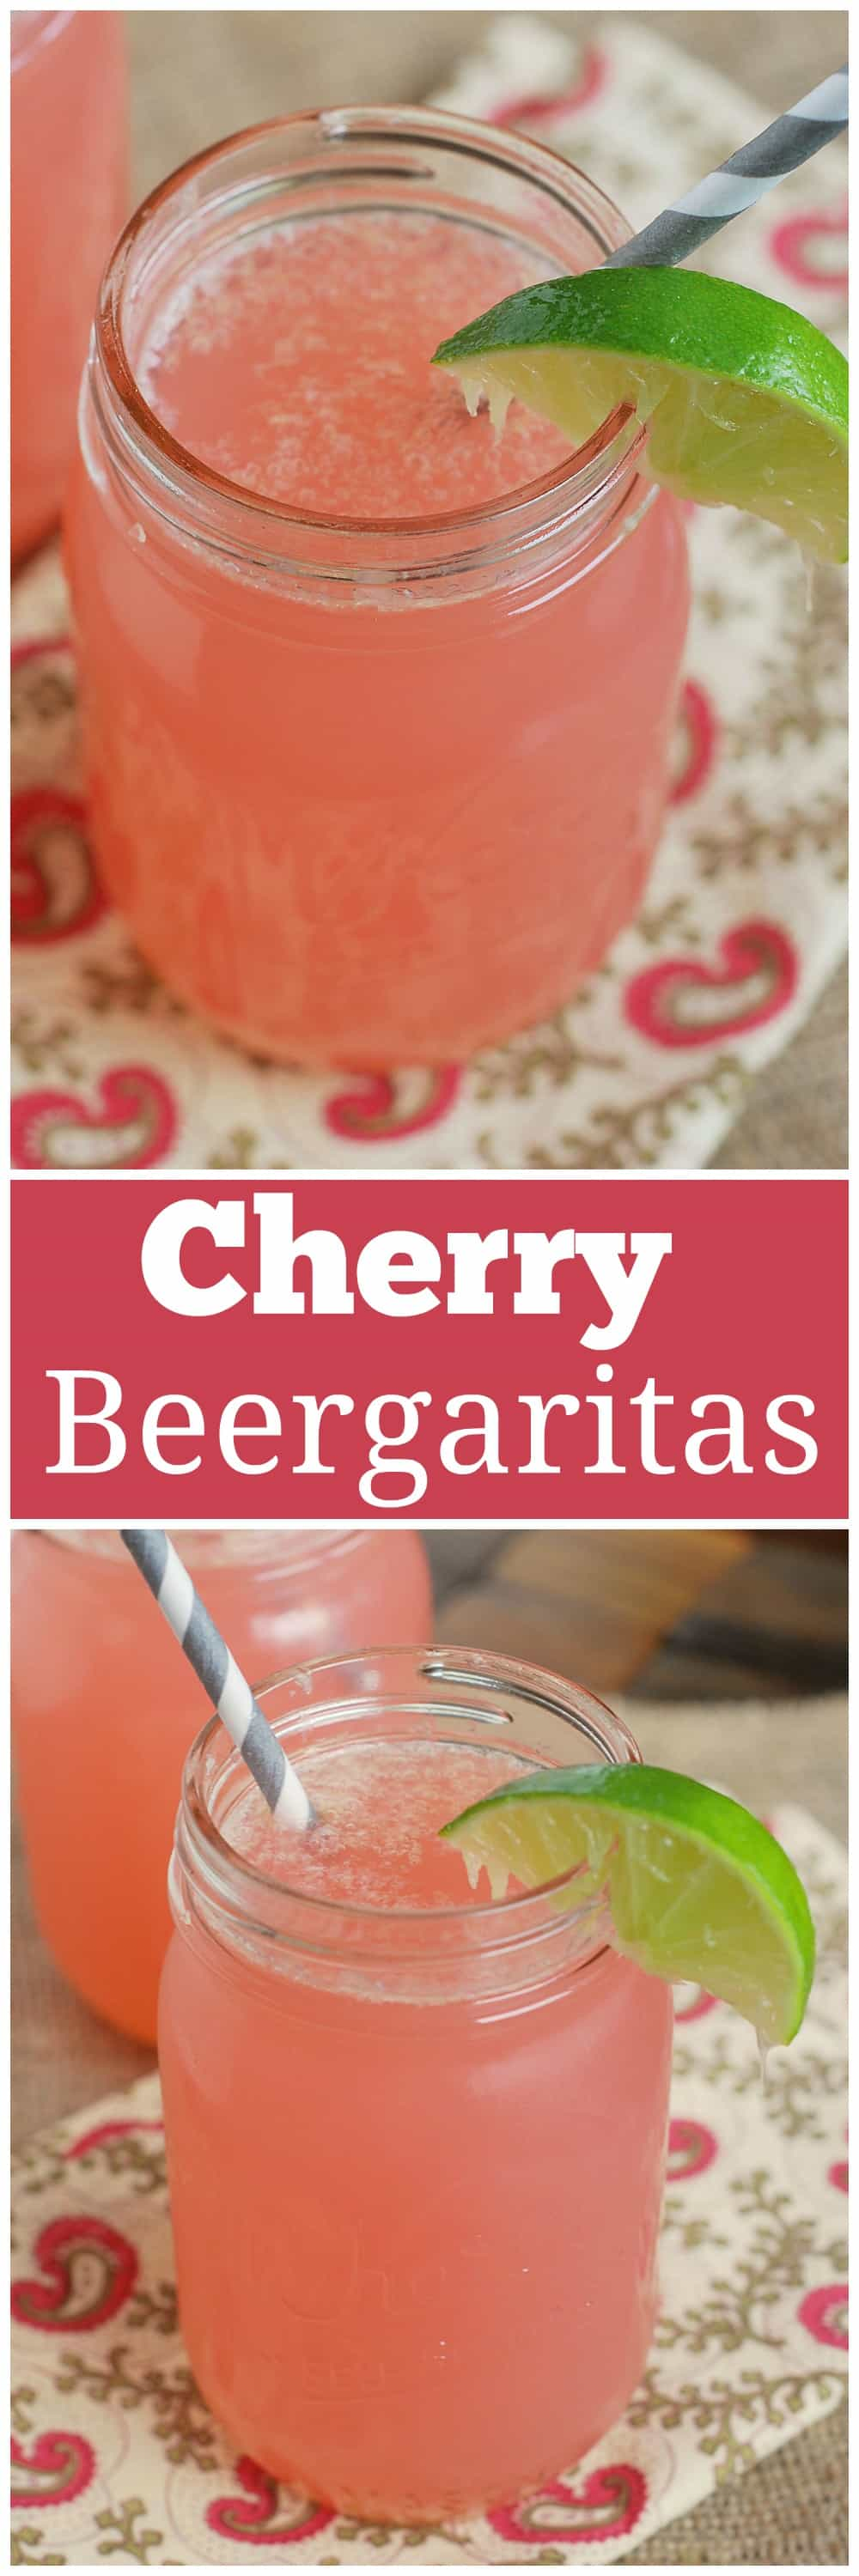 Cherry Beergaritas - tequila, Corona, cherry 7Up, and limeade! This will be your official summer drink!